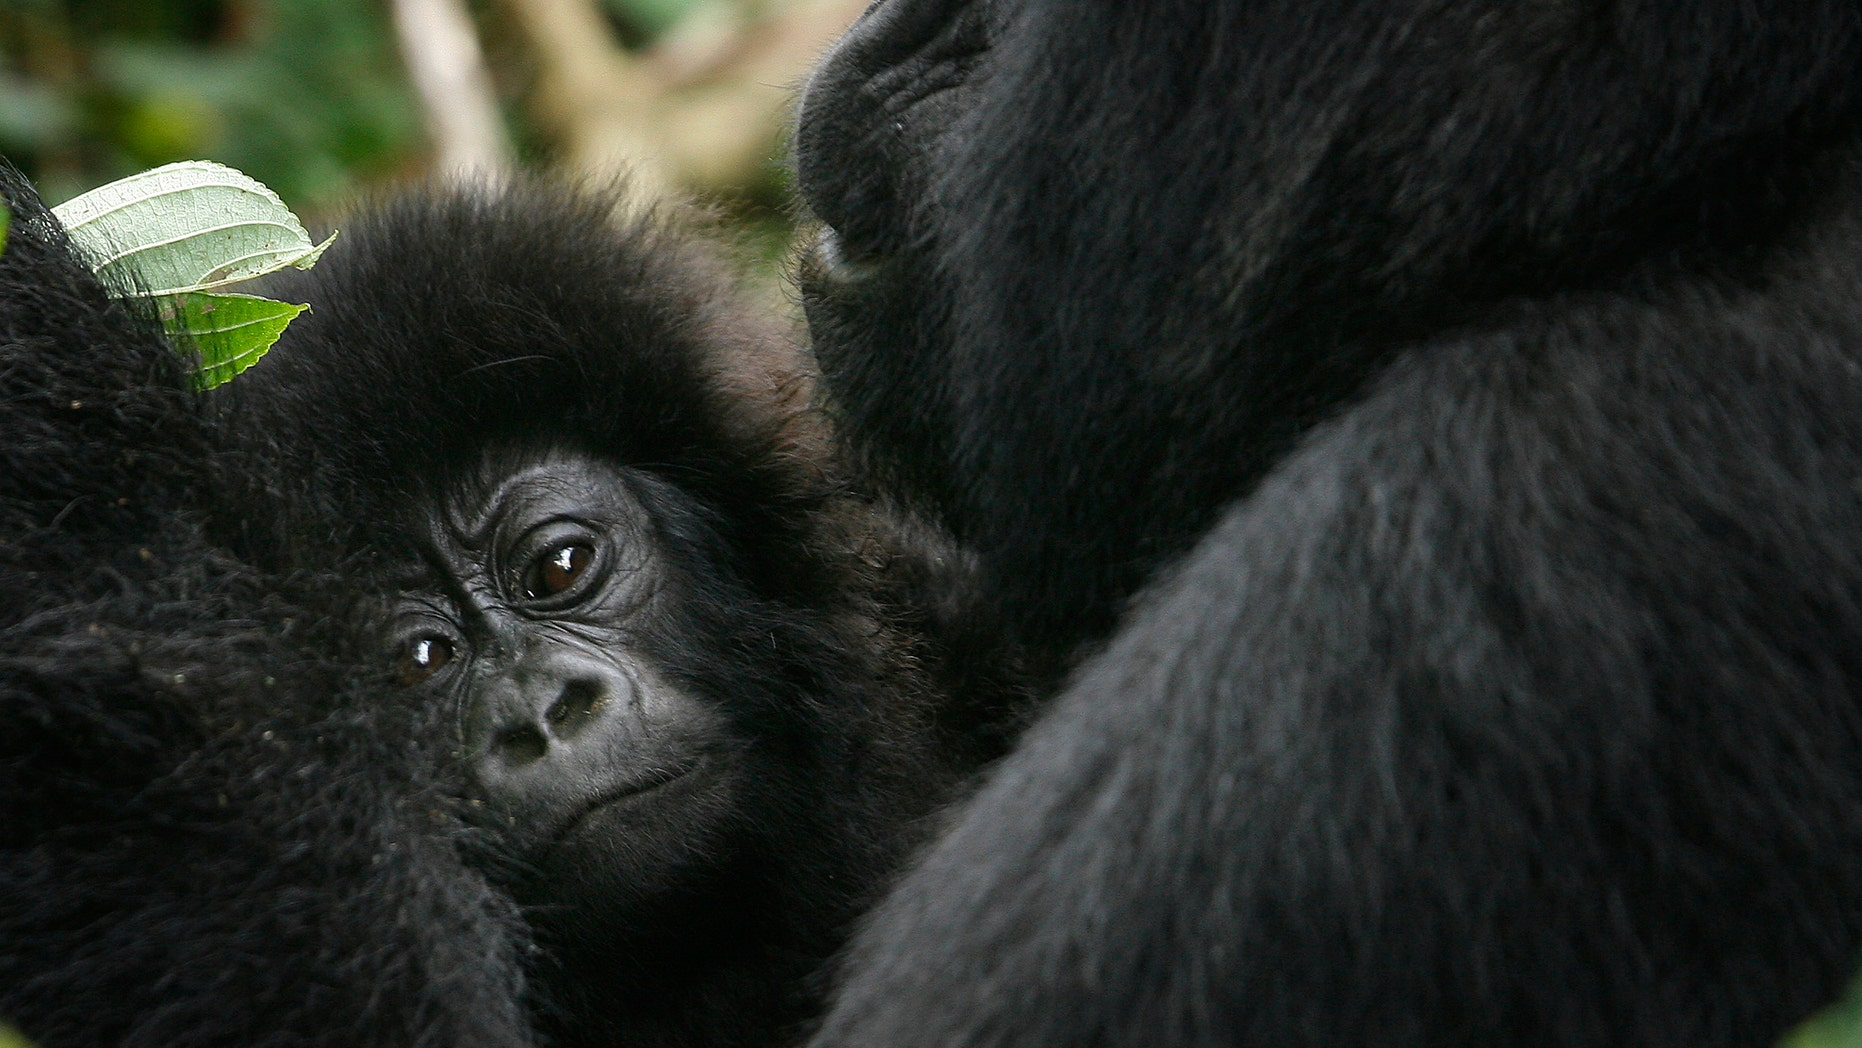 The eastern gorilla has been listed as critically endangered.